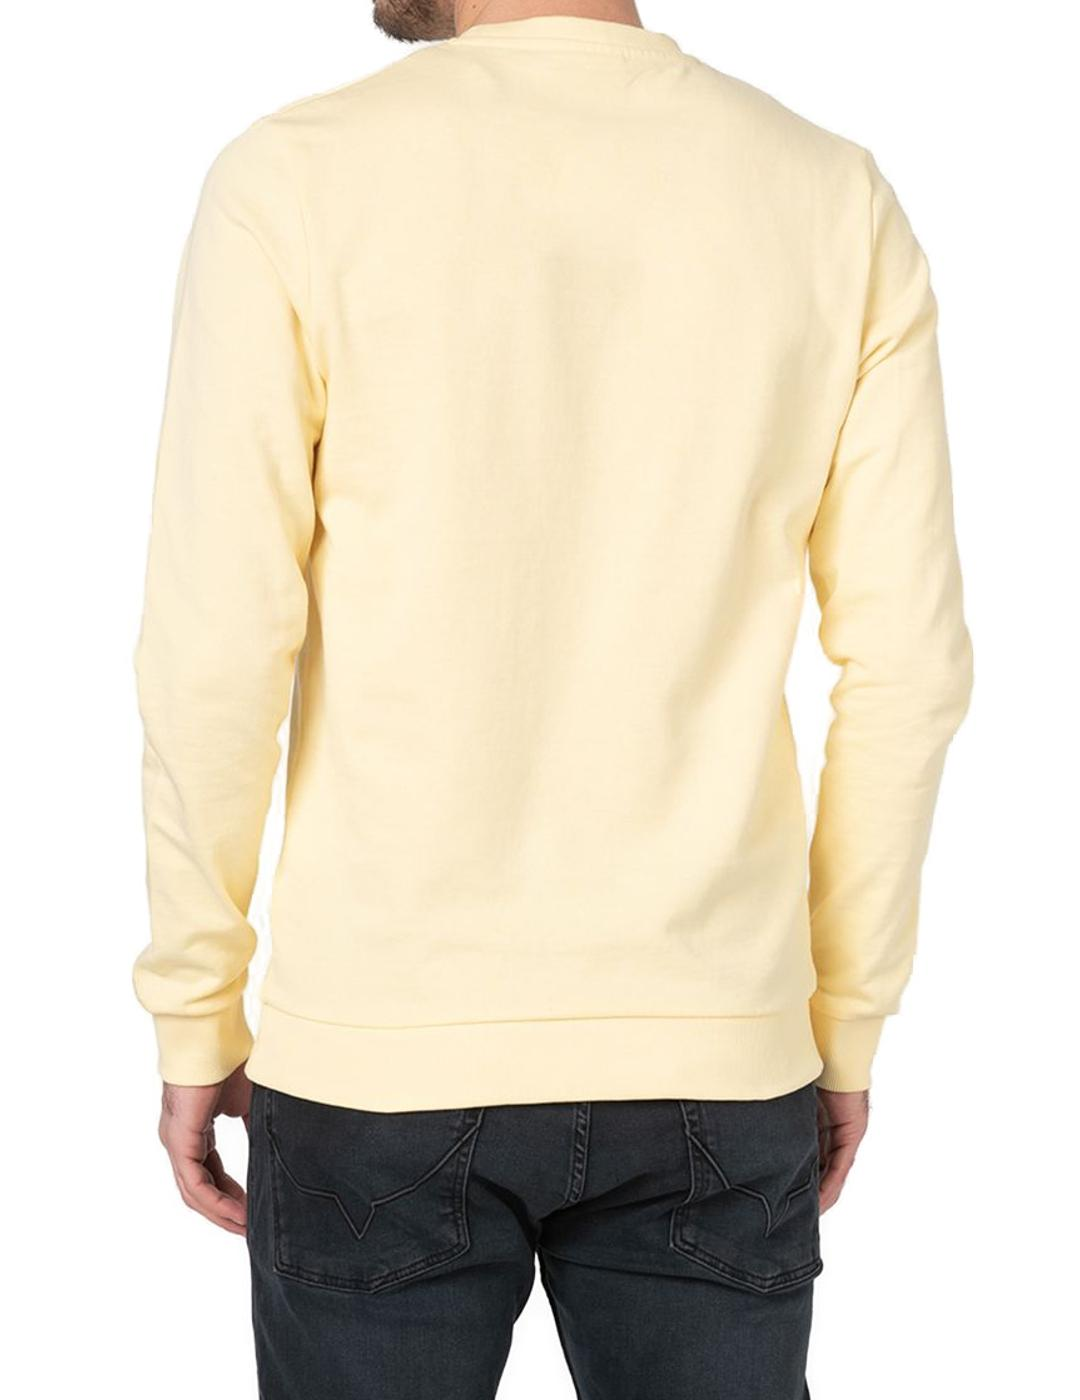 JORQUIVER SWEAT CREW NECK FLAN-W